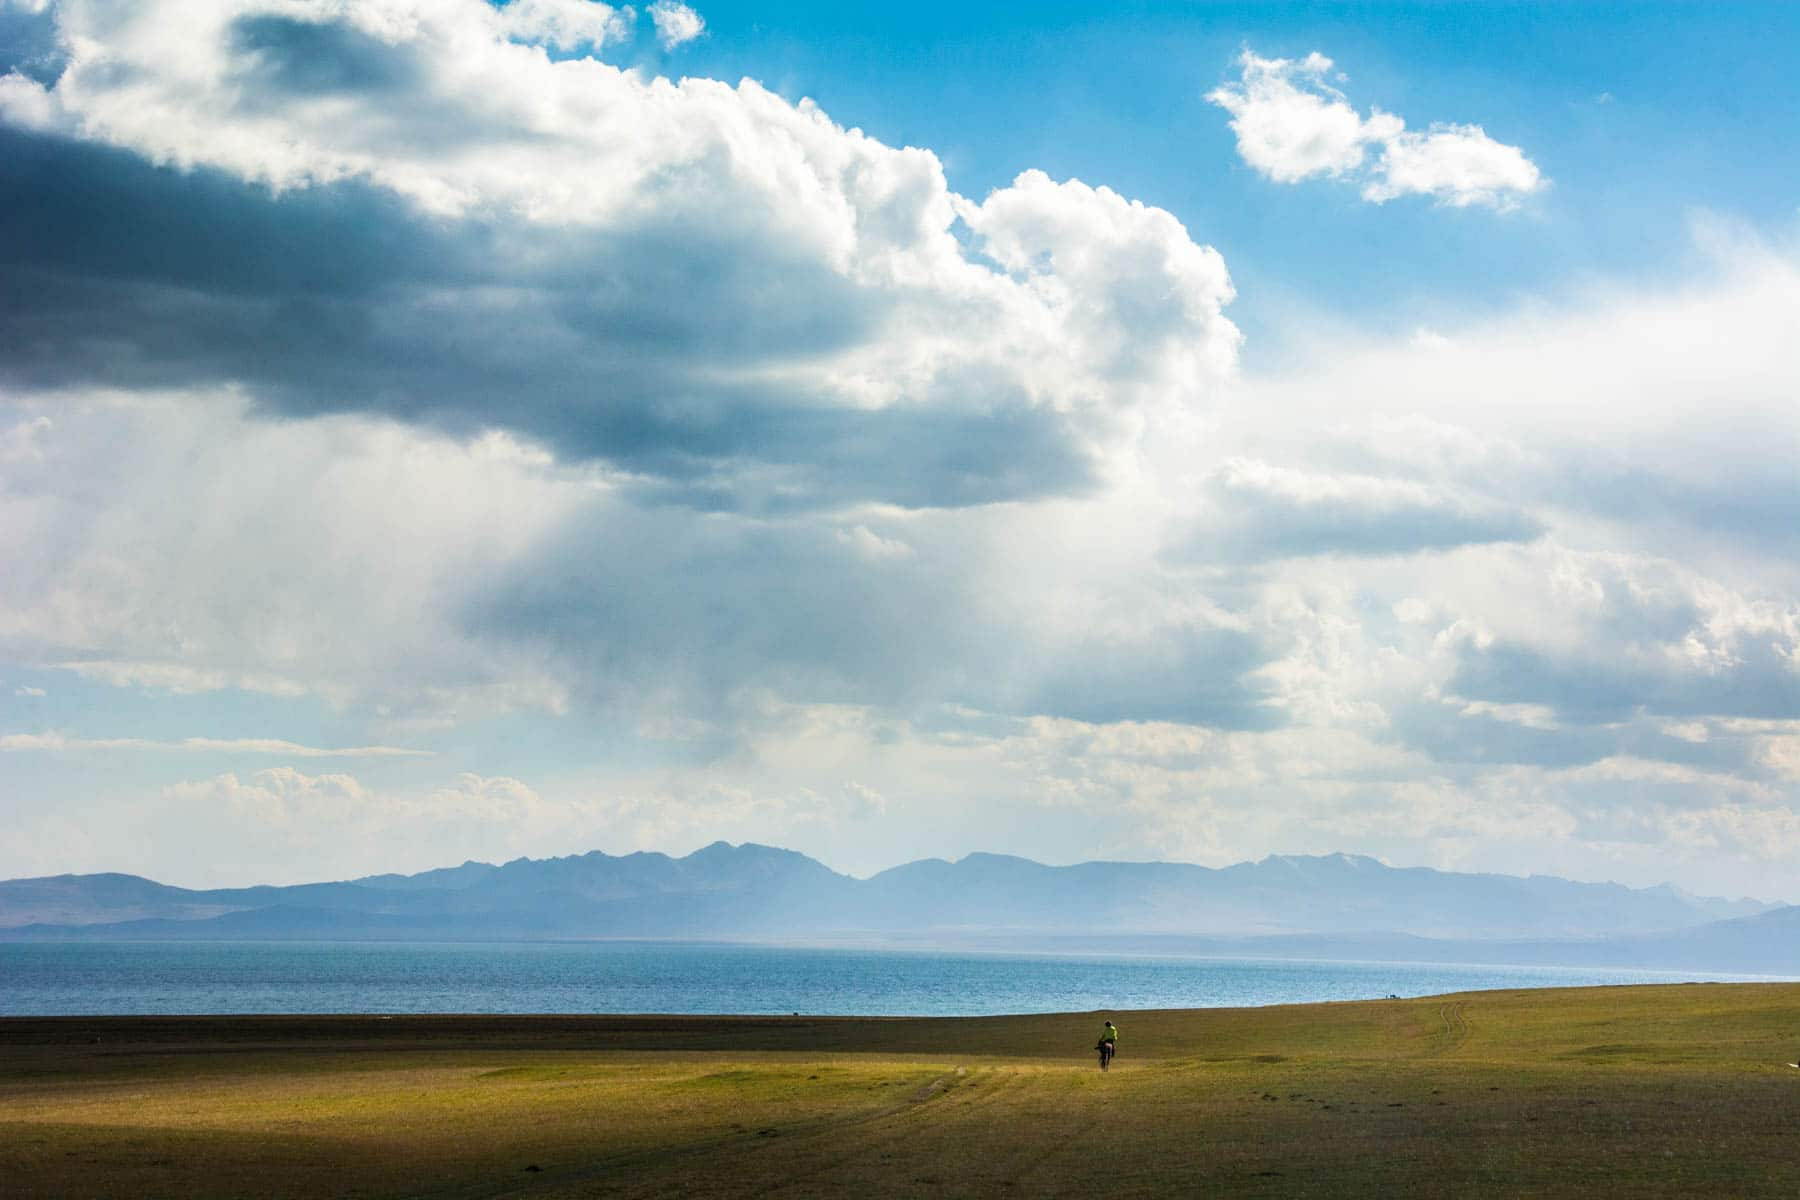 Riding through some golden sun rays at Song Kul lake in Kyrgyzstan - Lost With Purpose